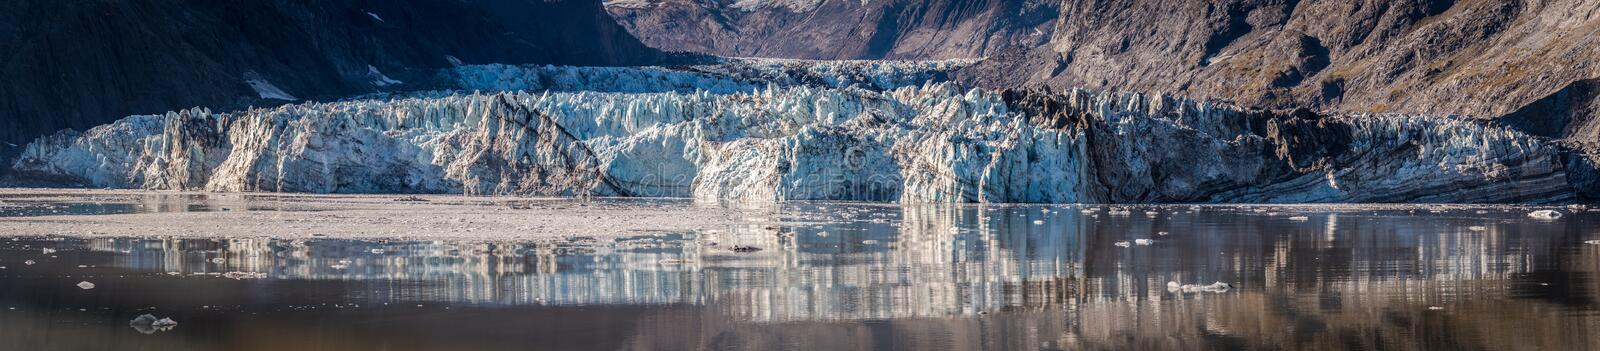 Johns Hopkins Glacier in the Glacier Bay National Park and Preserve, Alaska. In October 2017 stock image